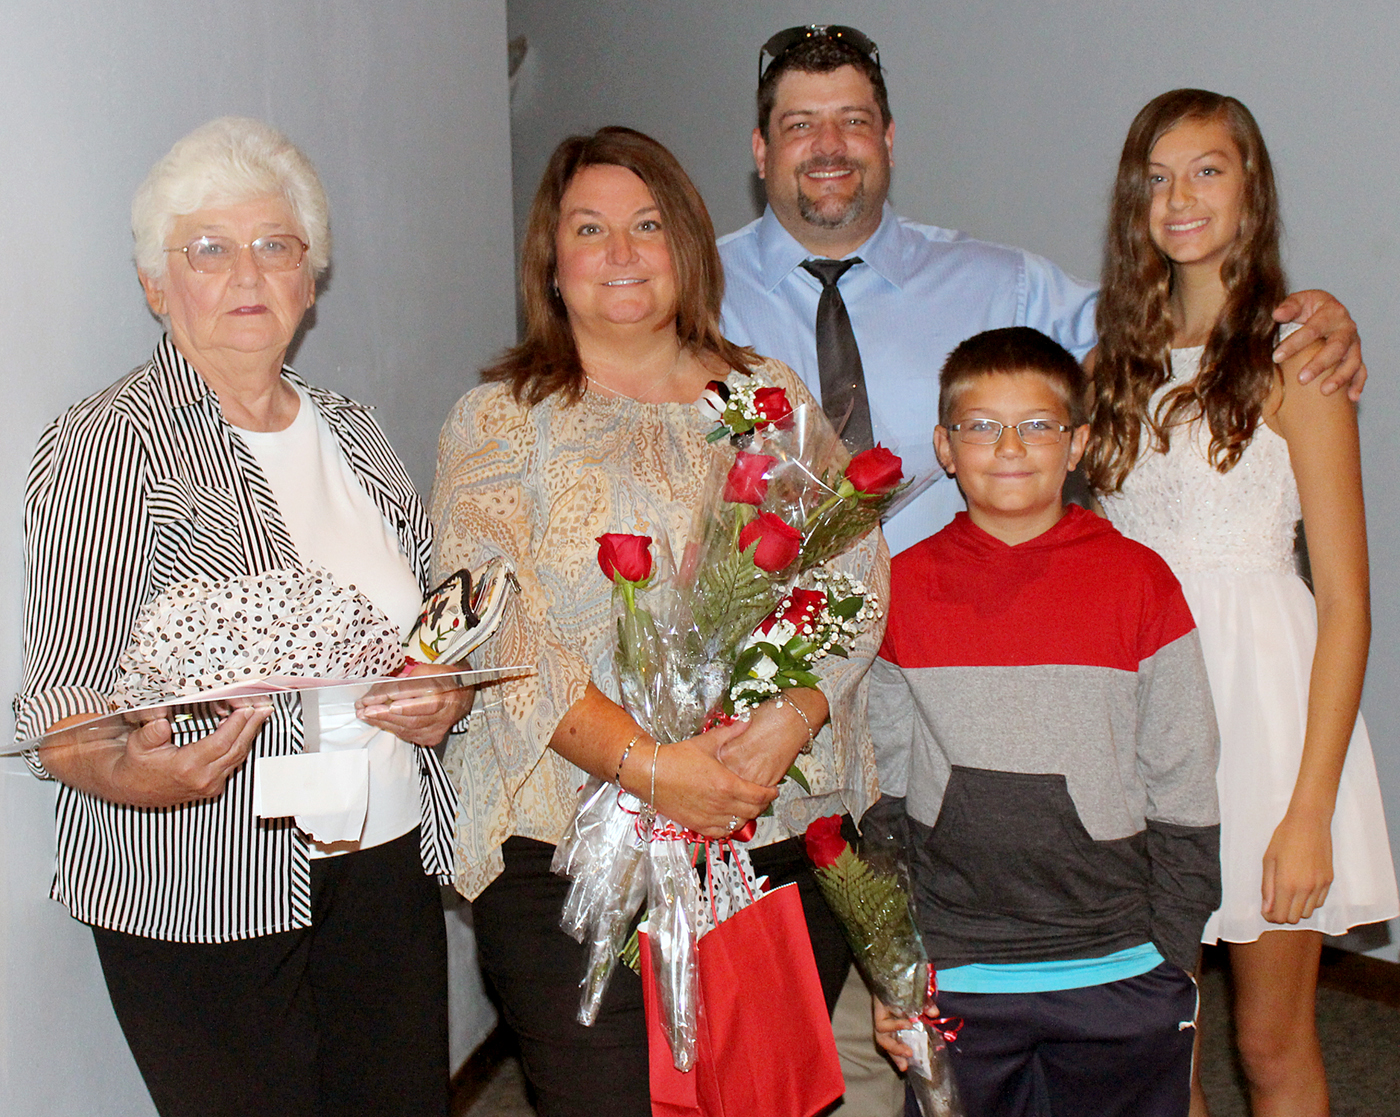 Stephanie Harney, Hilton CSD Teacher of the Year, with (l-r) Lois Clearwater, mother; Kevin Harney, husband; and children Aidan and Sonia. Provided photo